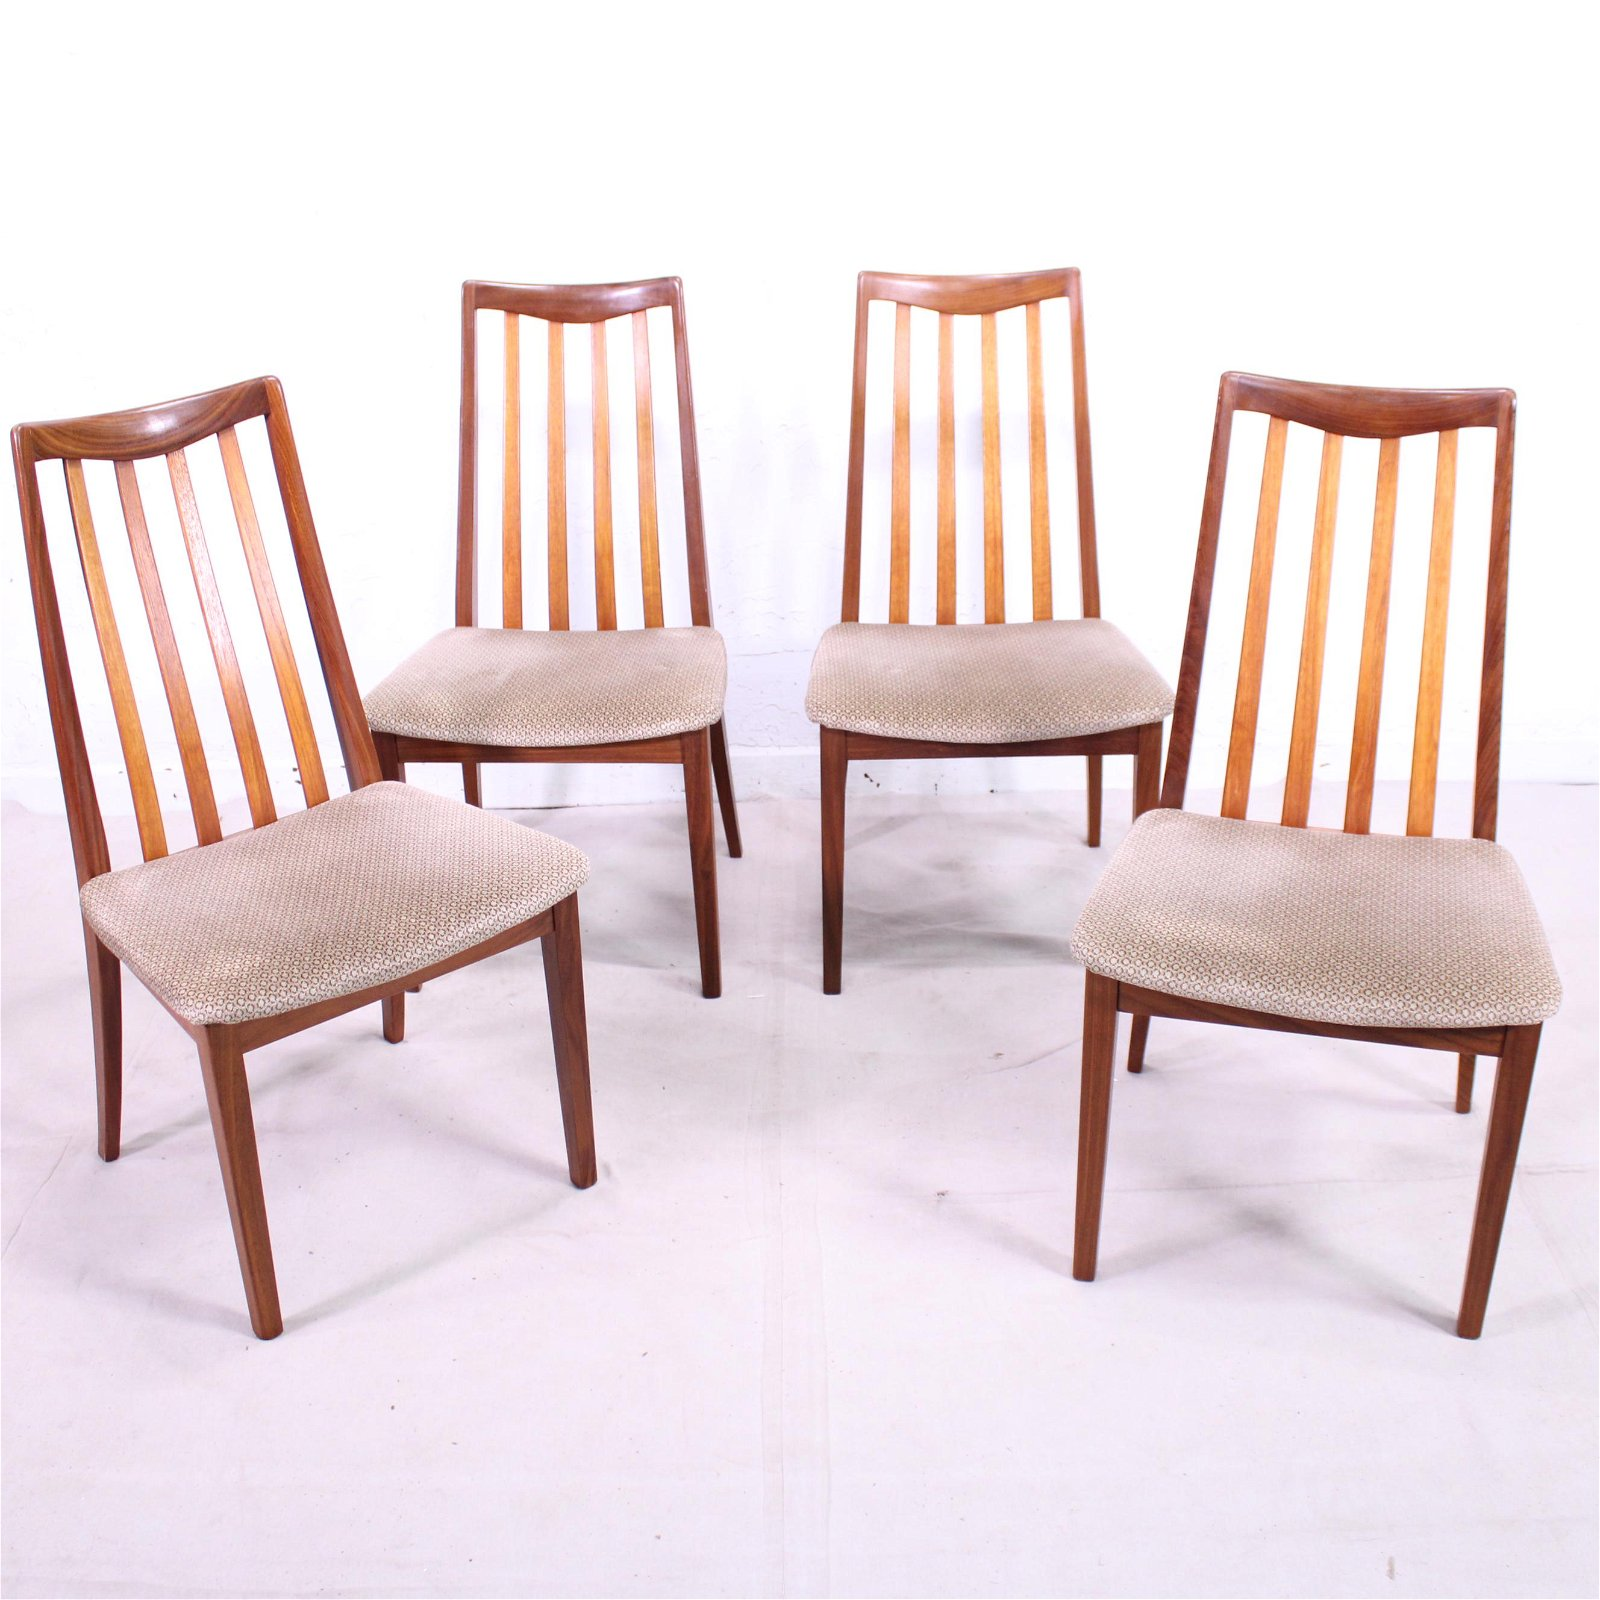 "4 Mid Century Modern ""Fresco"" Dining Chairs By G-Plan"